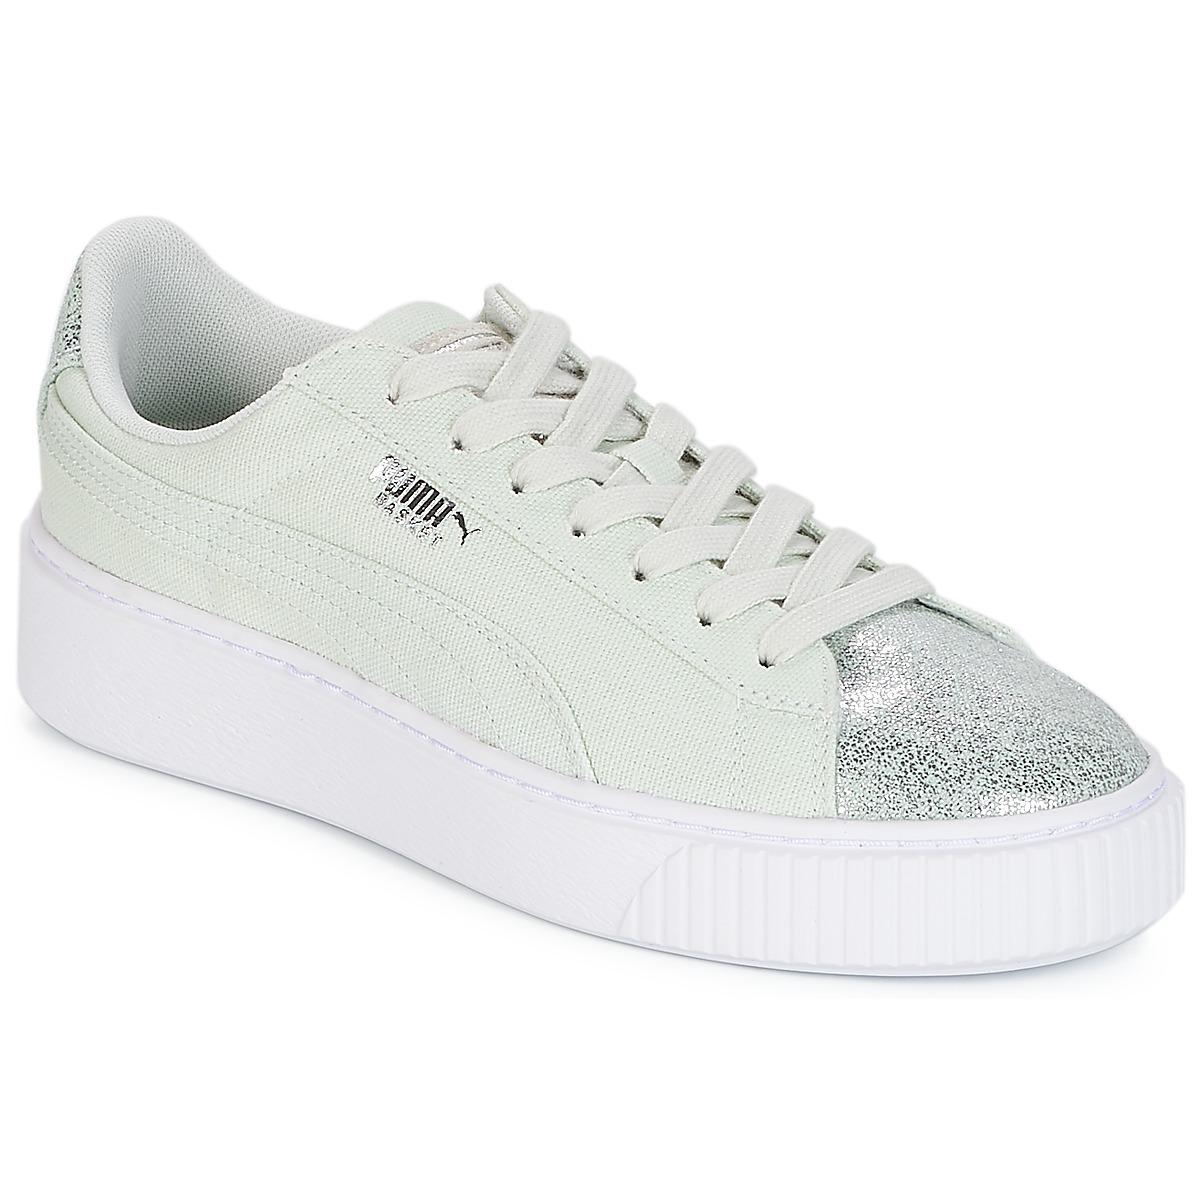 1abbc74e015d PUMA Basket Platform Canvas W s Shoes (trainers) in Green - Lyst